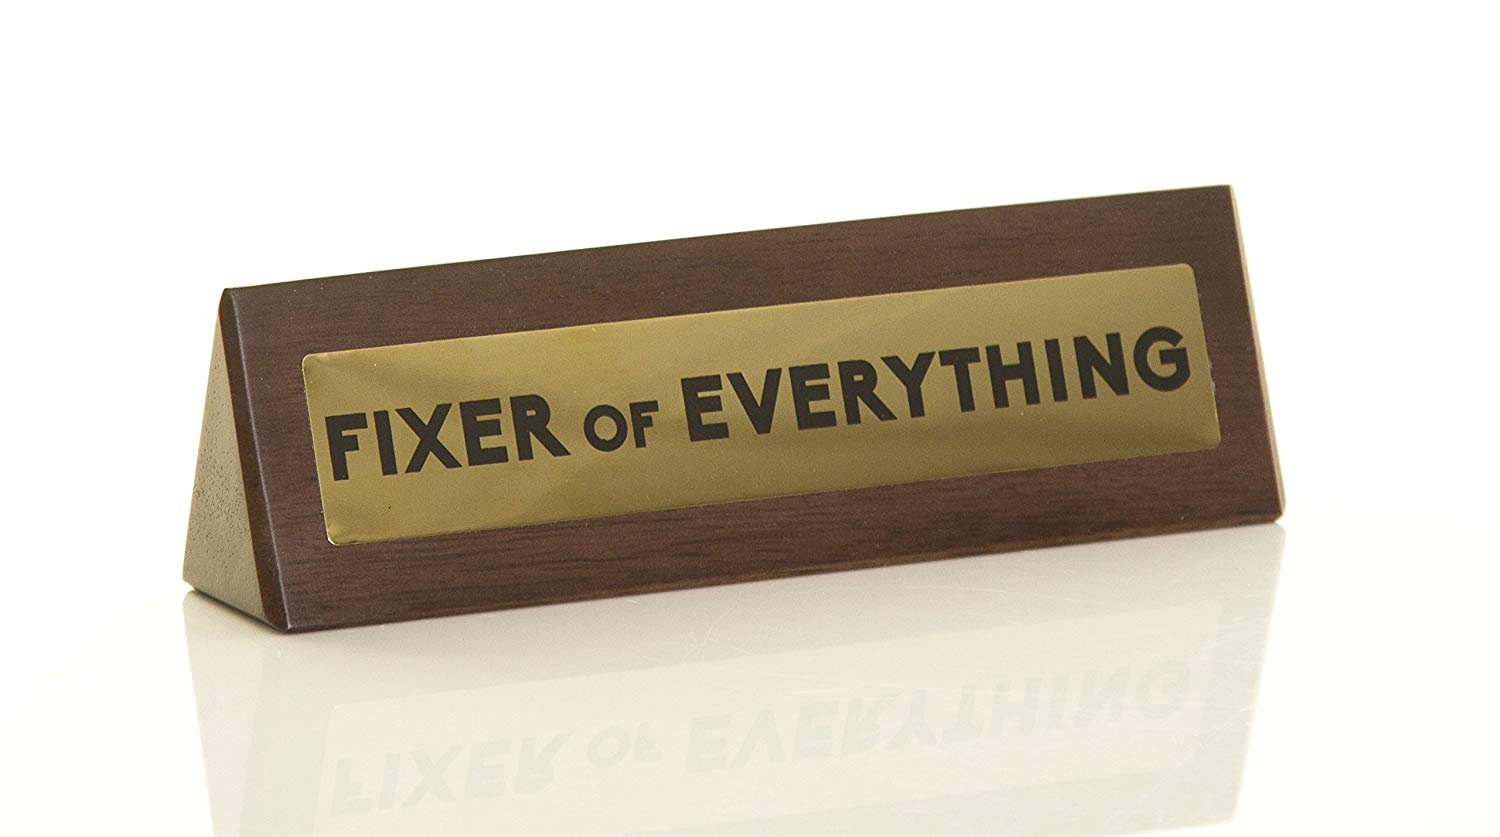 fixer of everything novelty wooden warning design